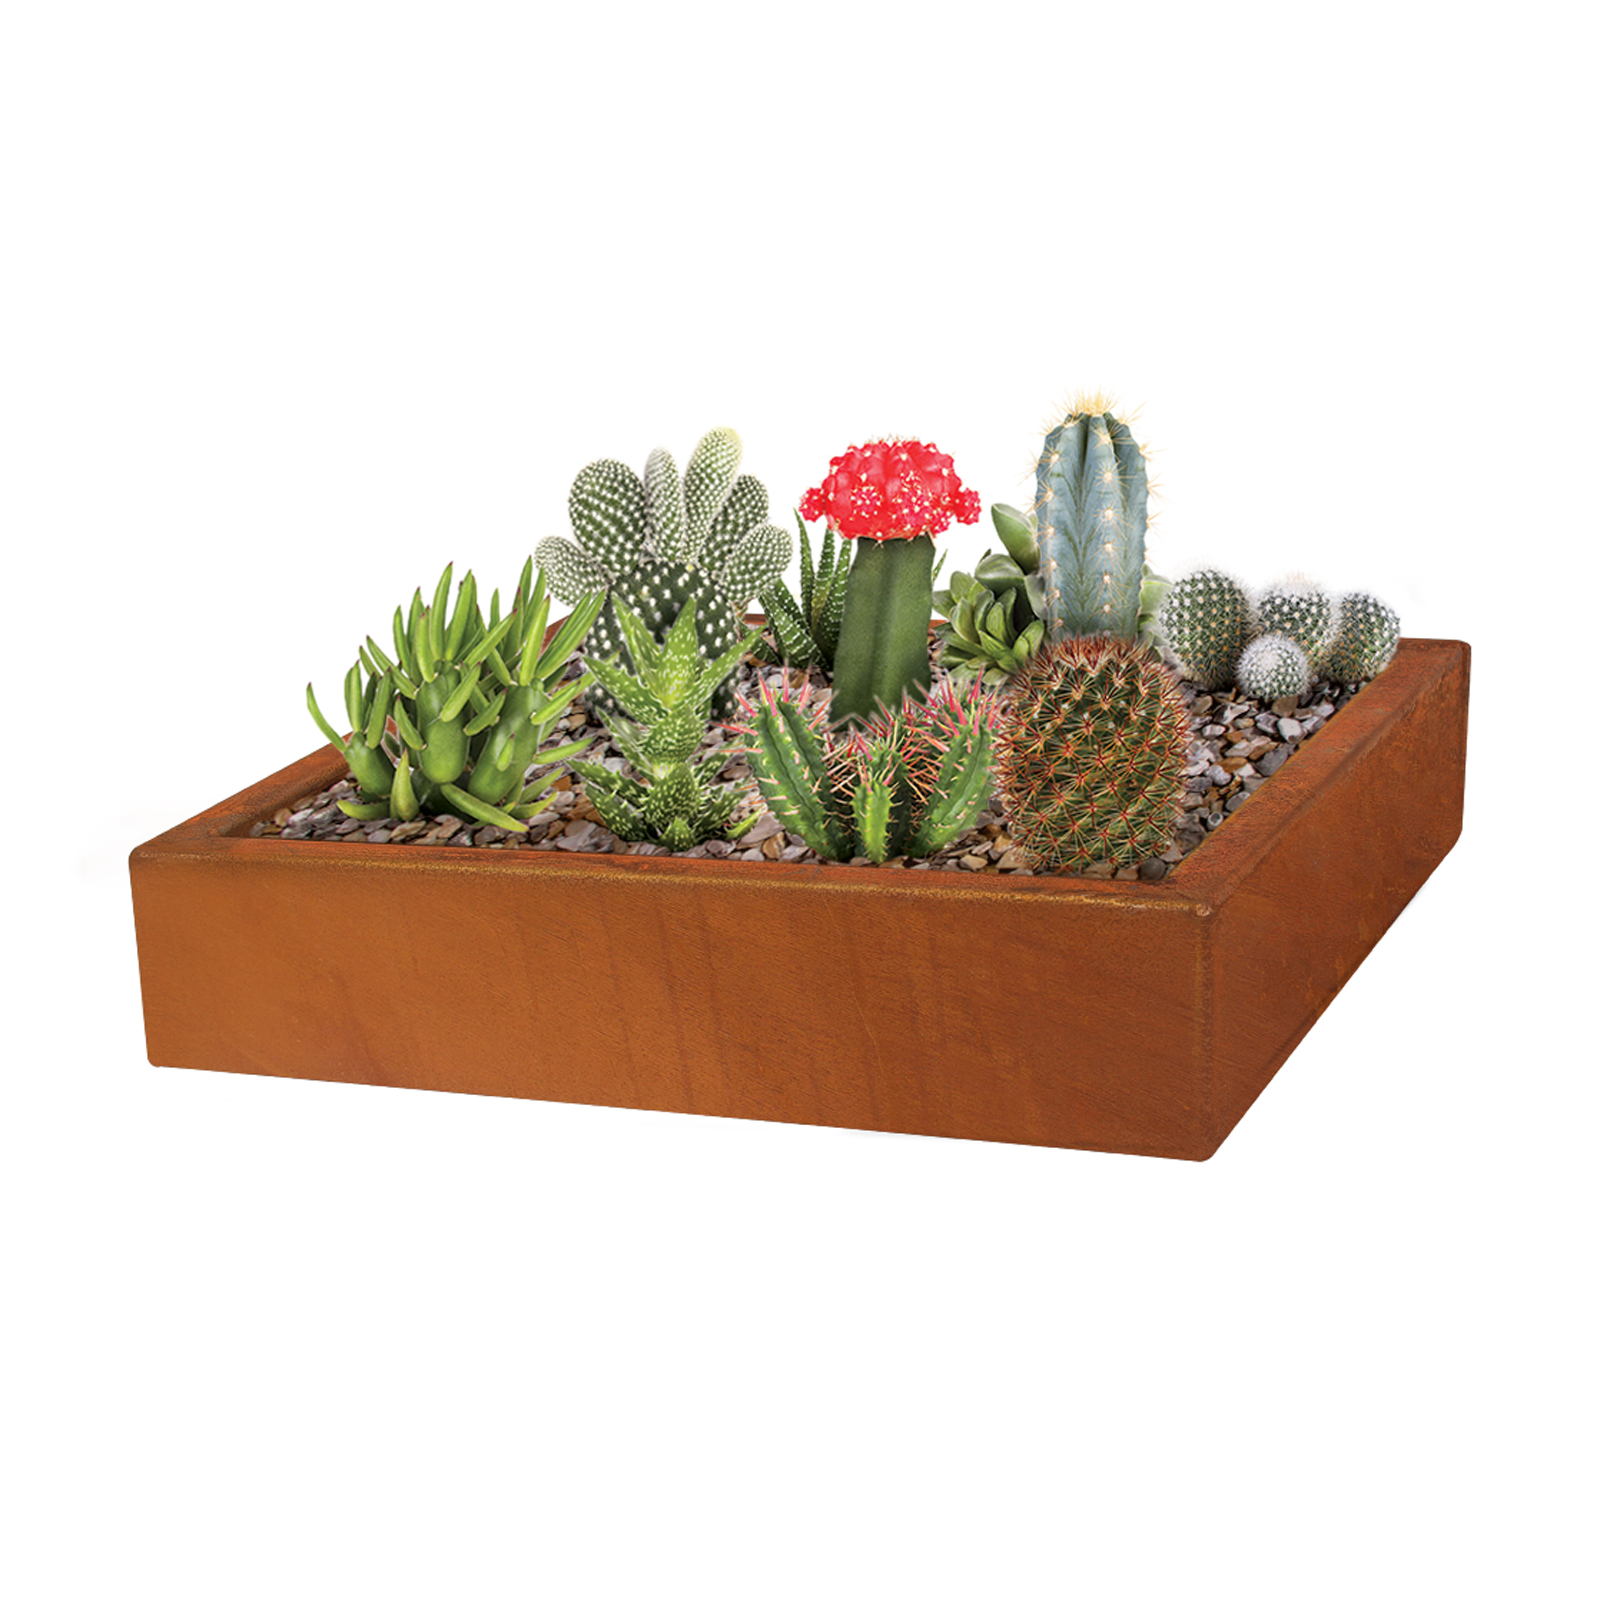 18485 copa planter with plants 350x350x76